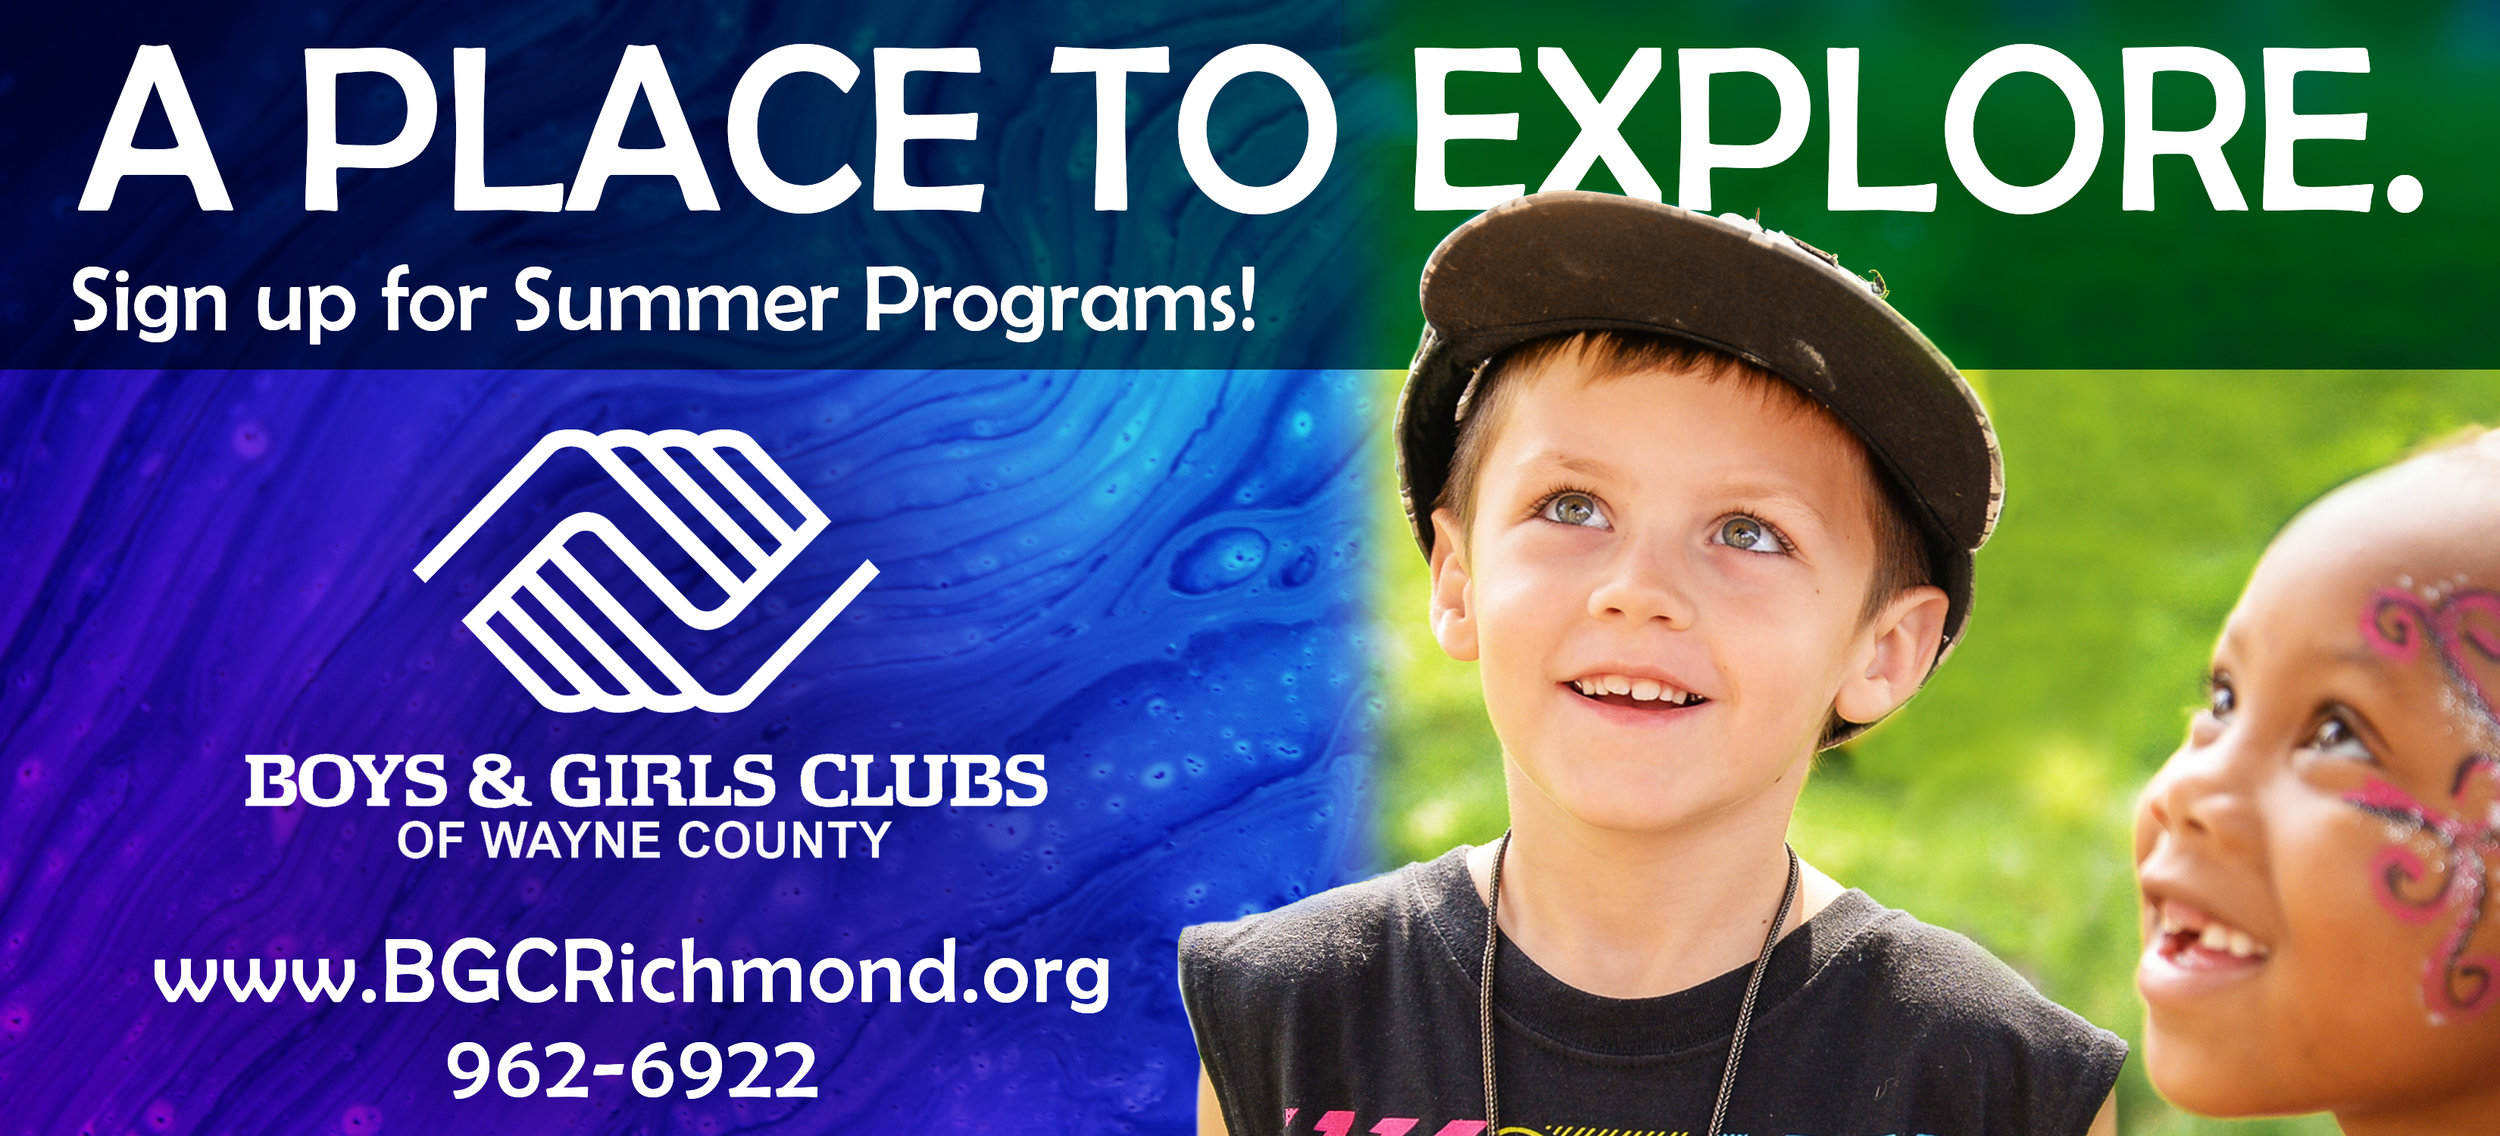 Summer Programs Billboard.jpg